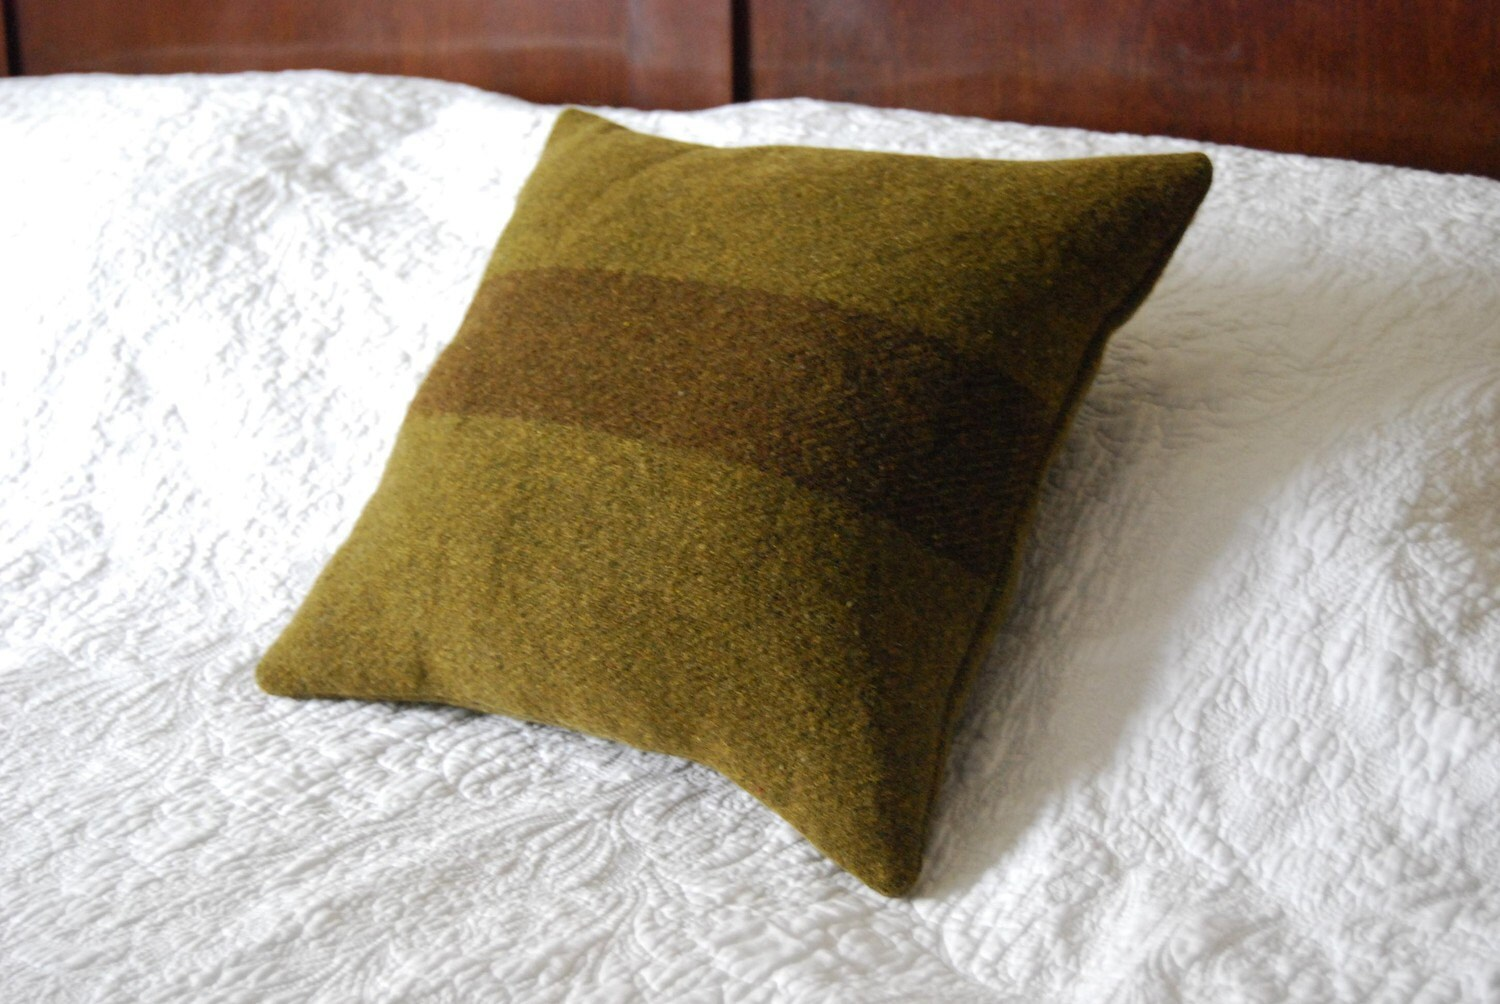 Green vintage army blanket cushion with kapok, 12 x 12